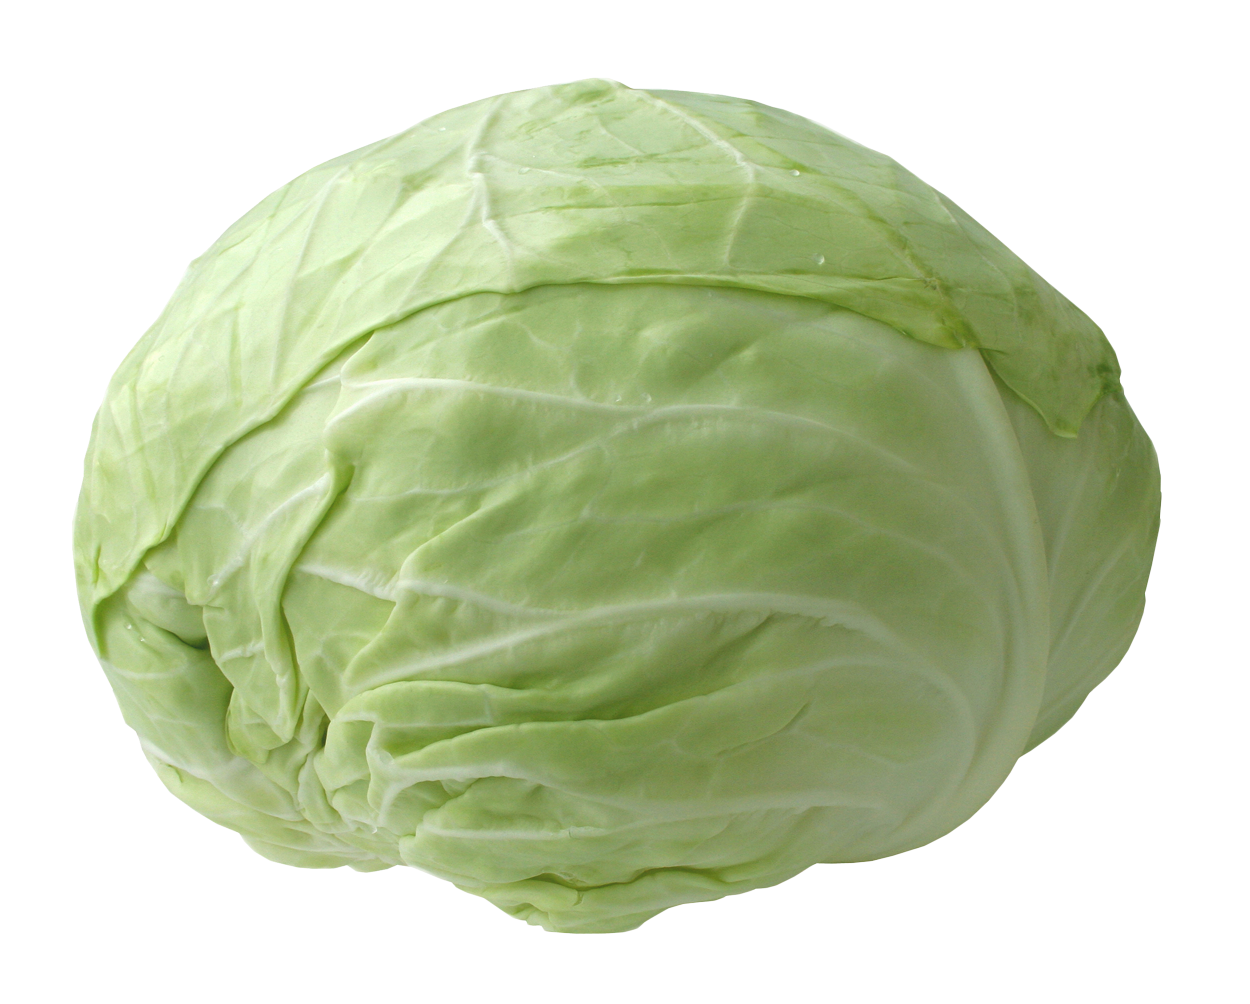 Clipart vegetables cabbage. Fresh png image purepng